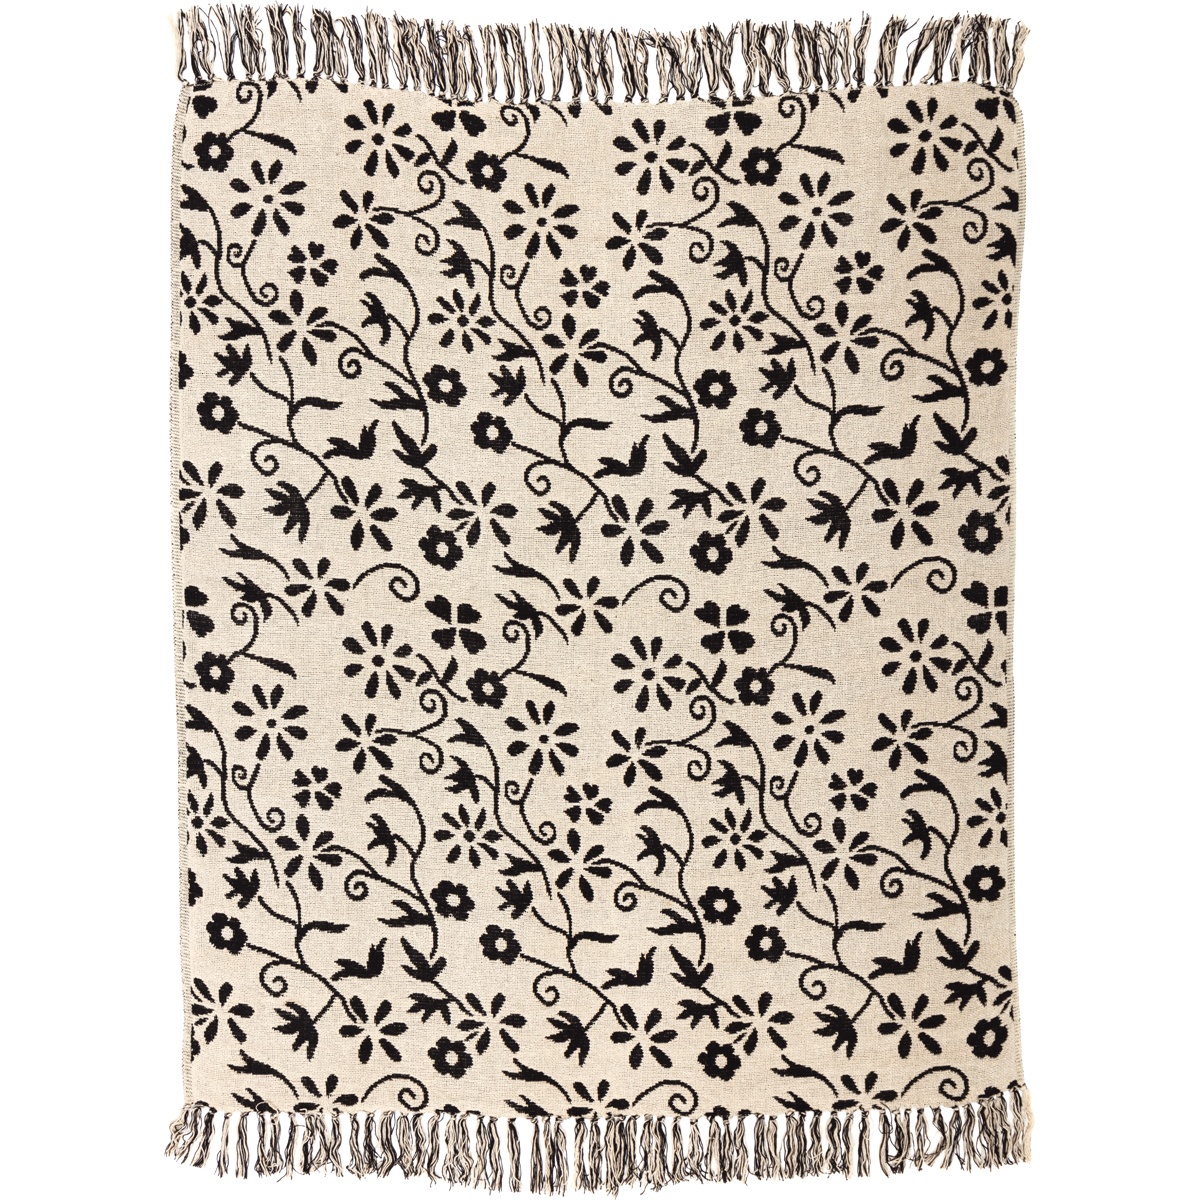 Creme White Farmhouse Decor Cordova Cotton Knotted Tassels Floral / Flower Throw